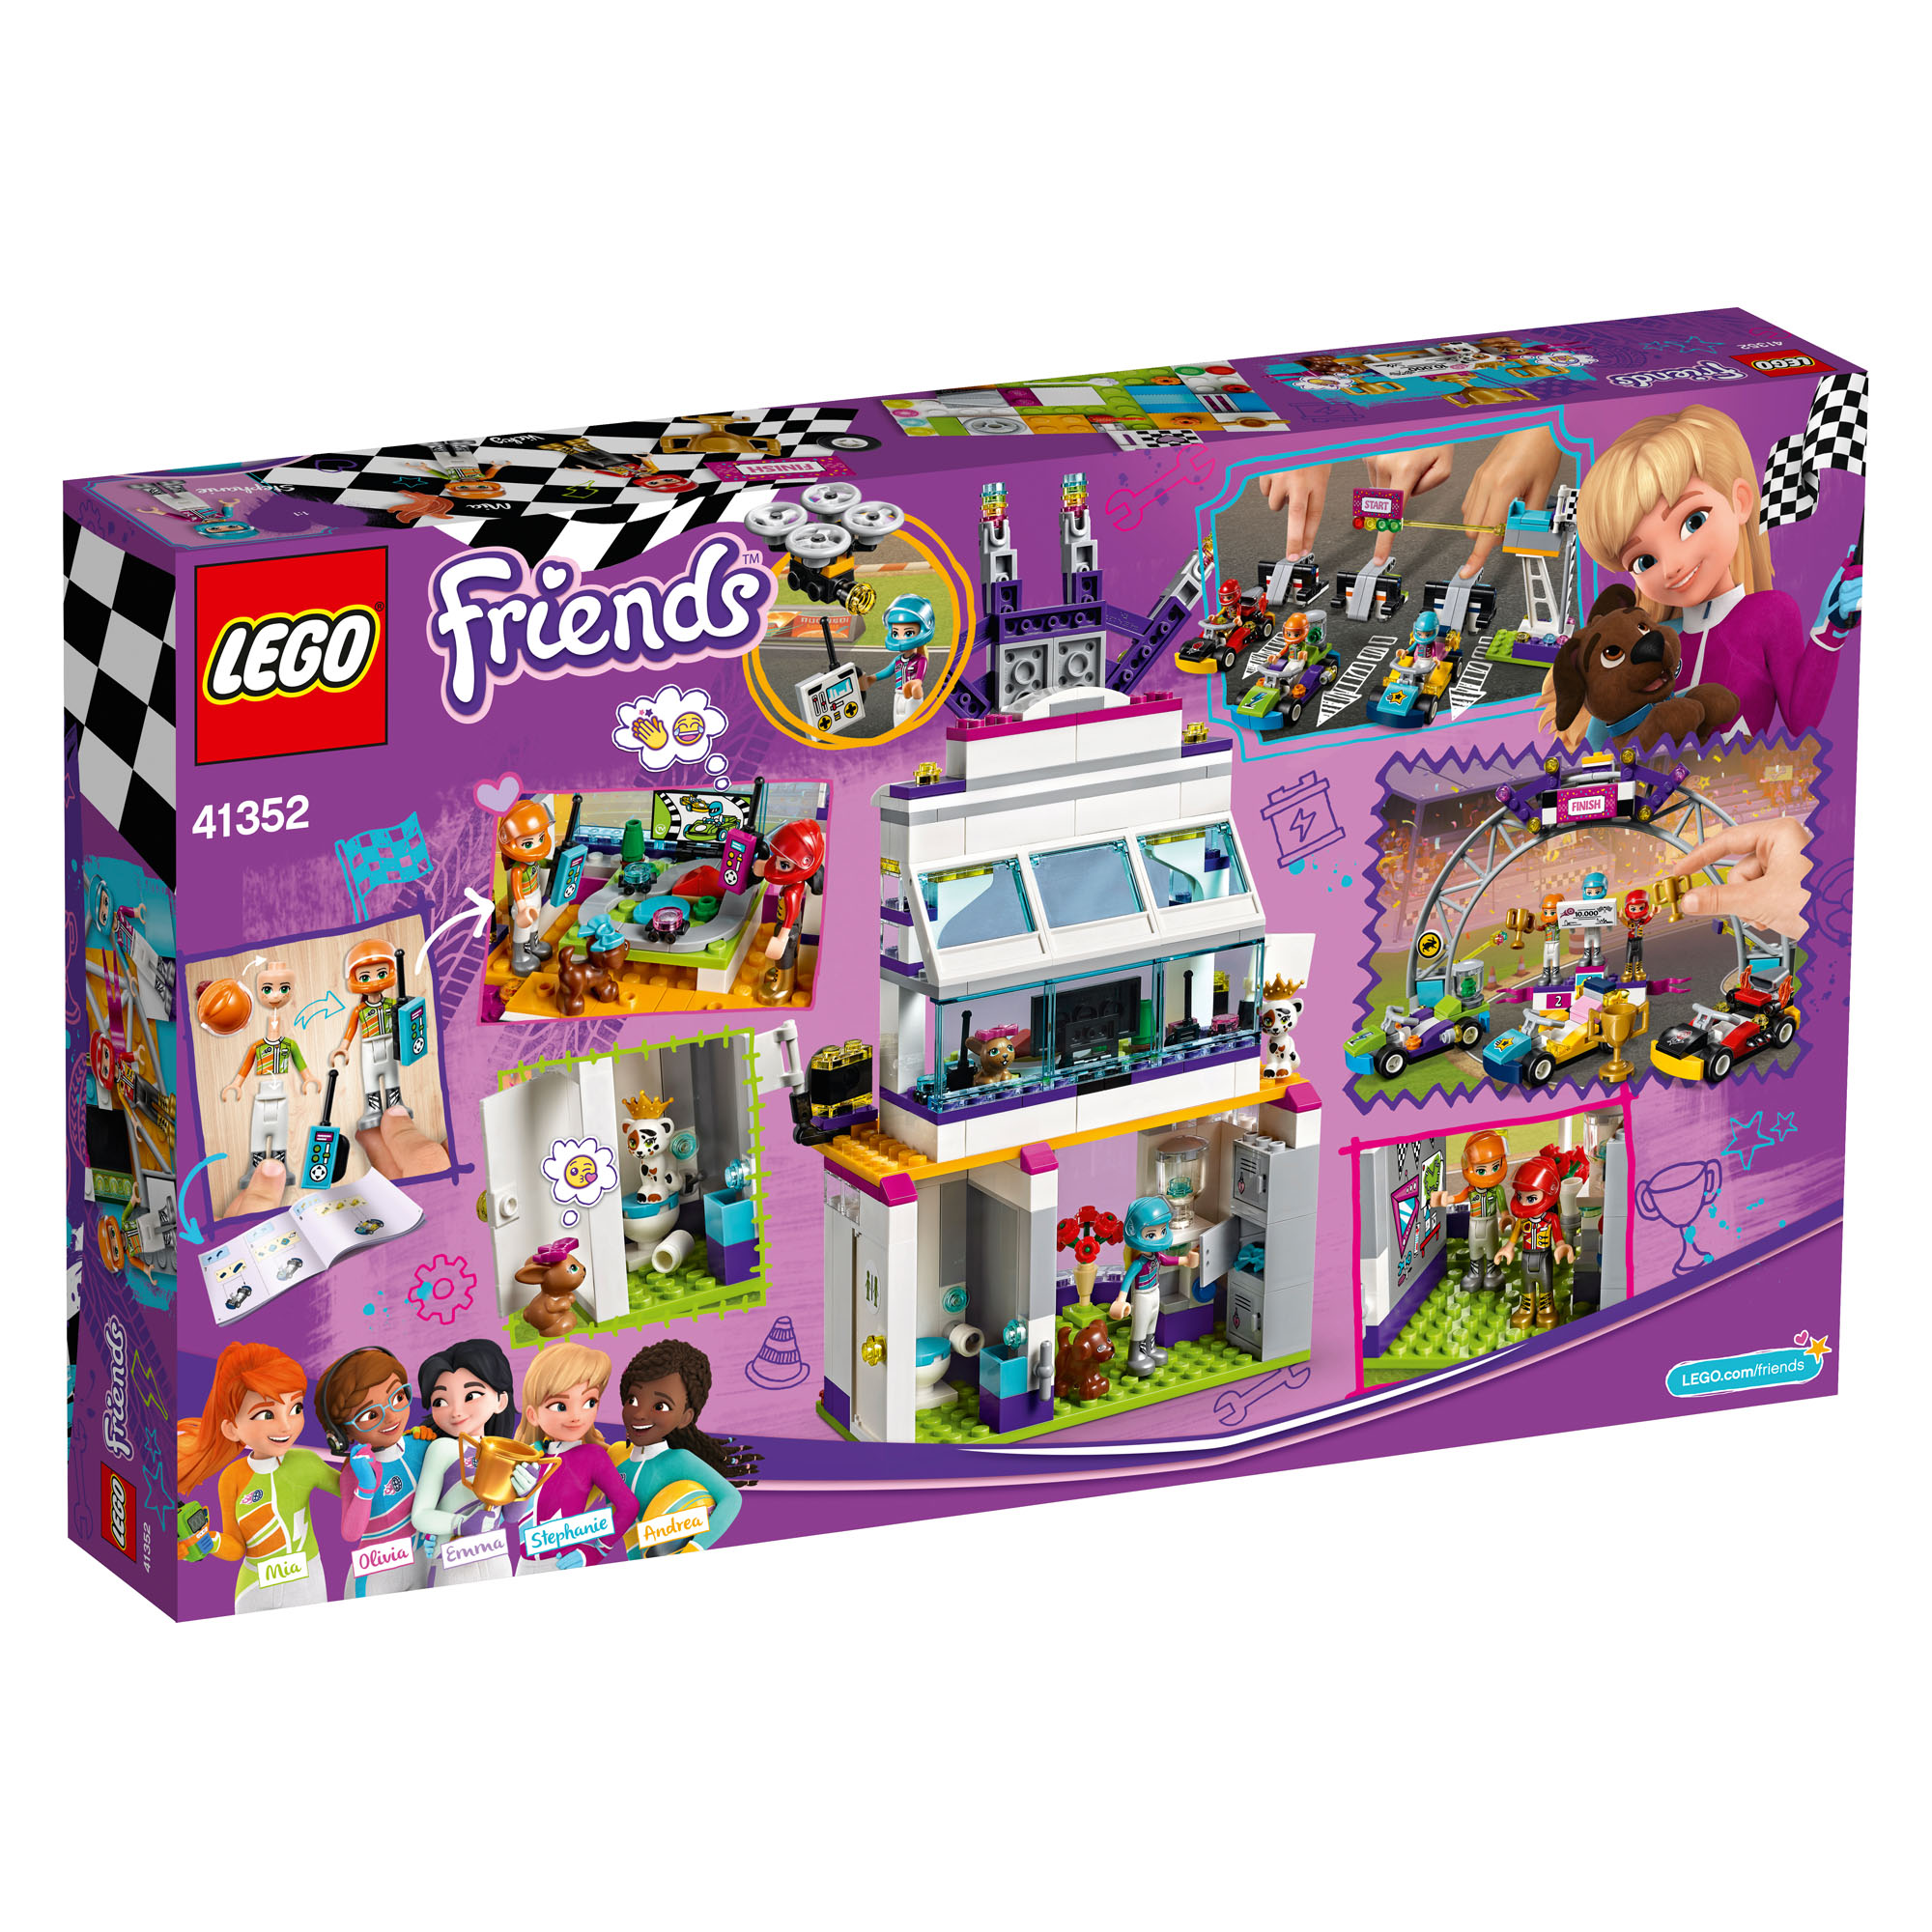 41352 Lego Friends The Big Race Day 648 Pieces Age 7 New Release